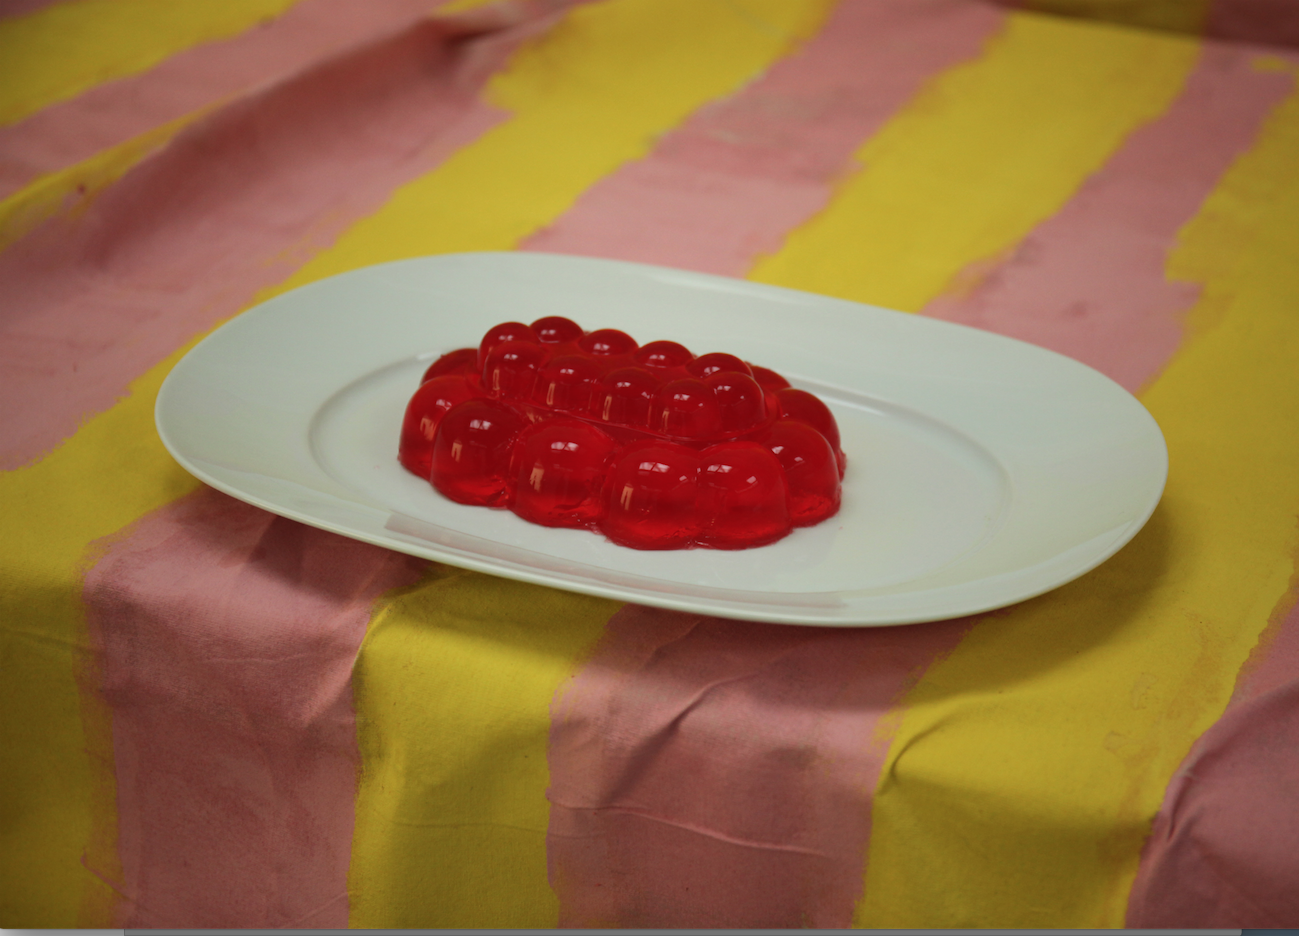 Madeleine Preston, Museum of Sugar - Work in progress, 2018, Hartley's jelly, ceramic plate, painted calico, dimensions variable